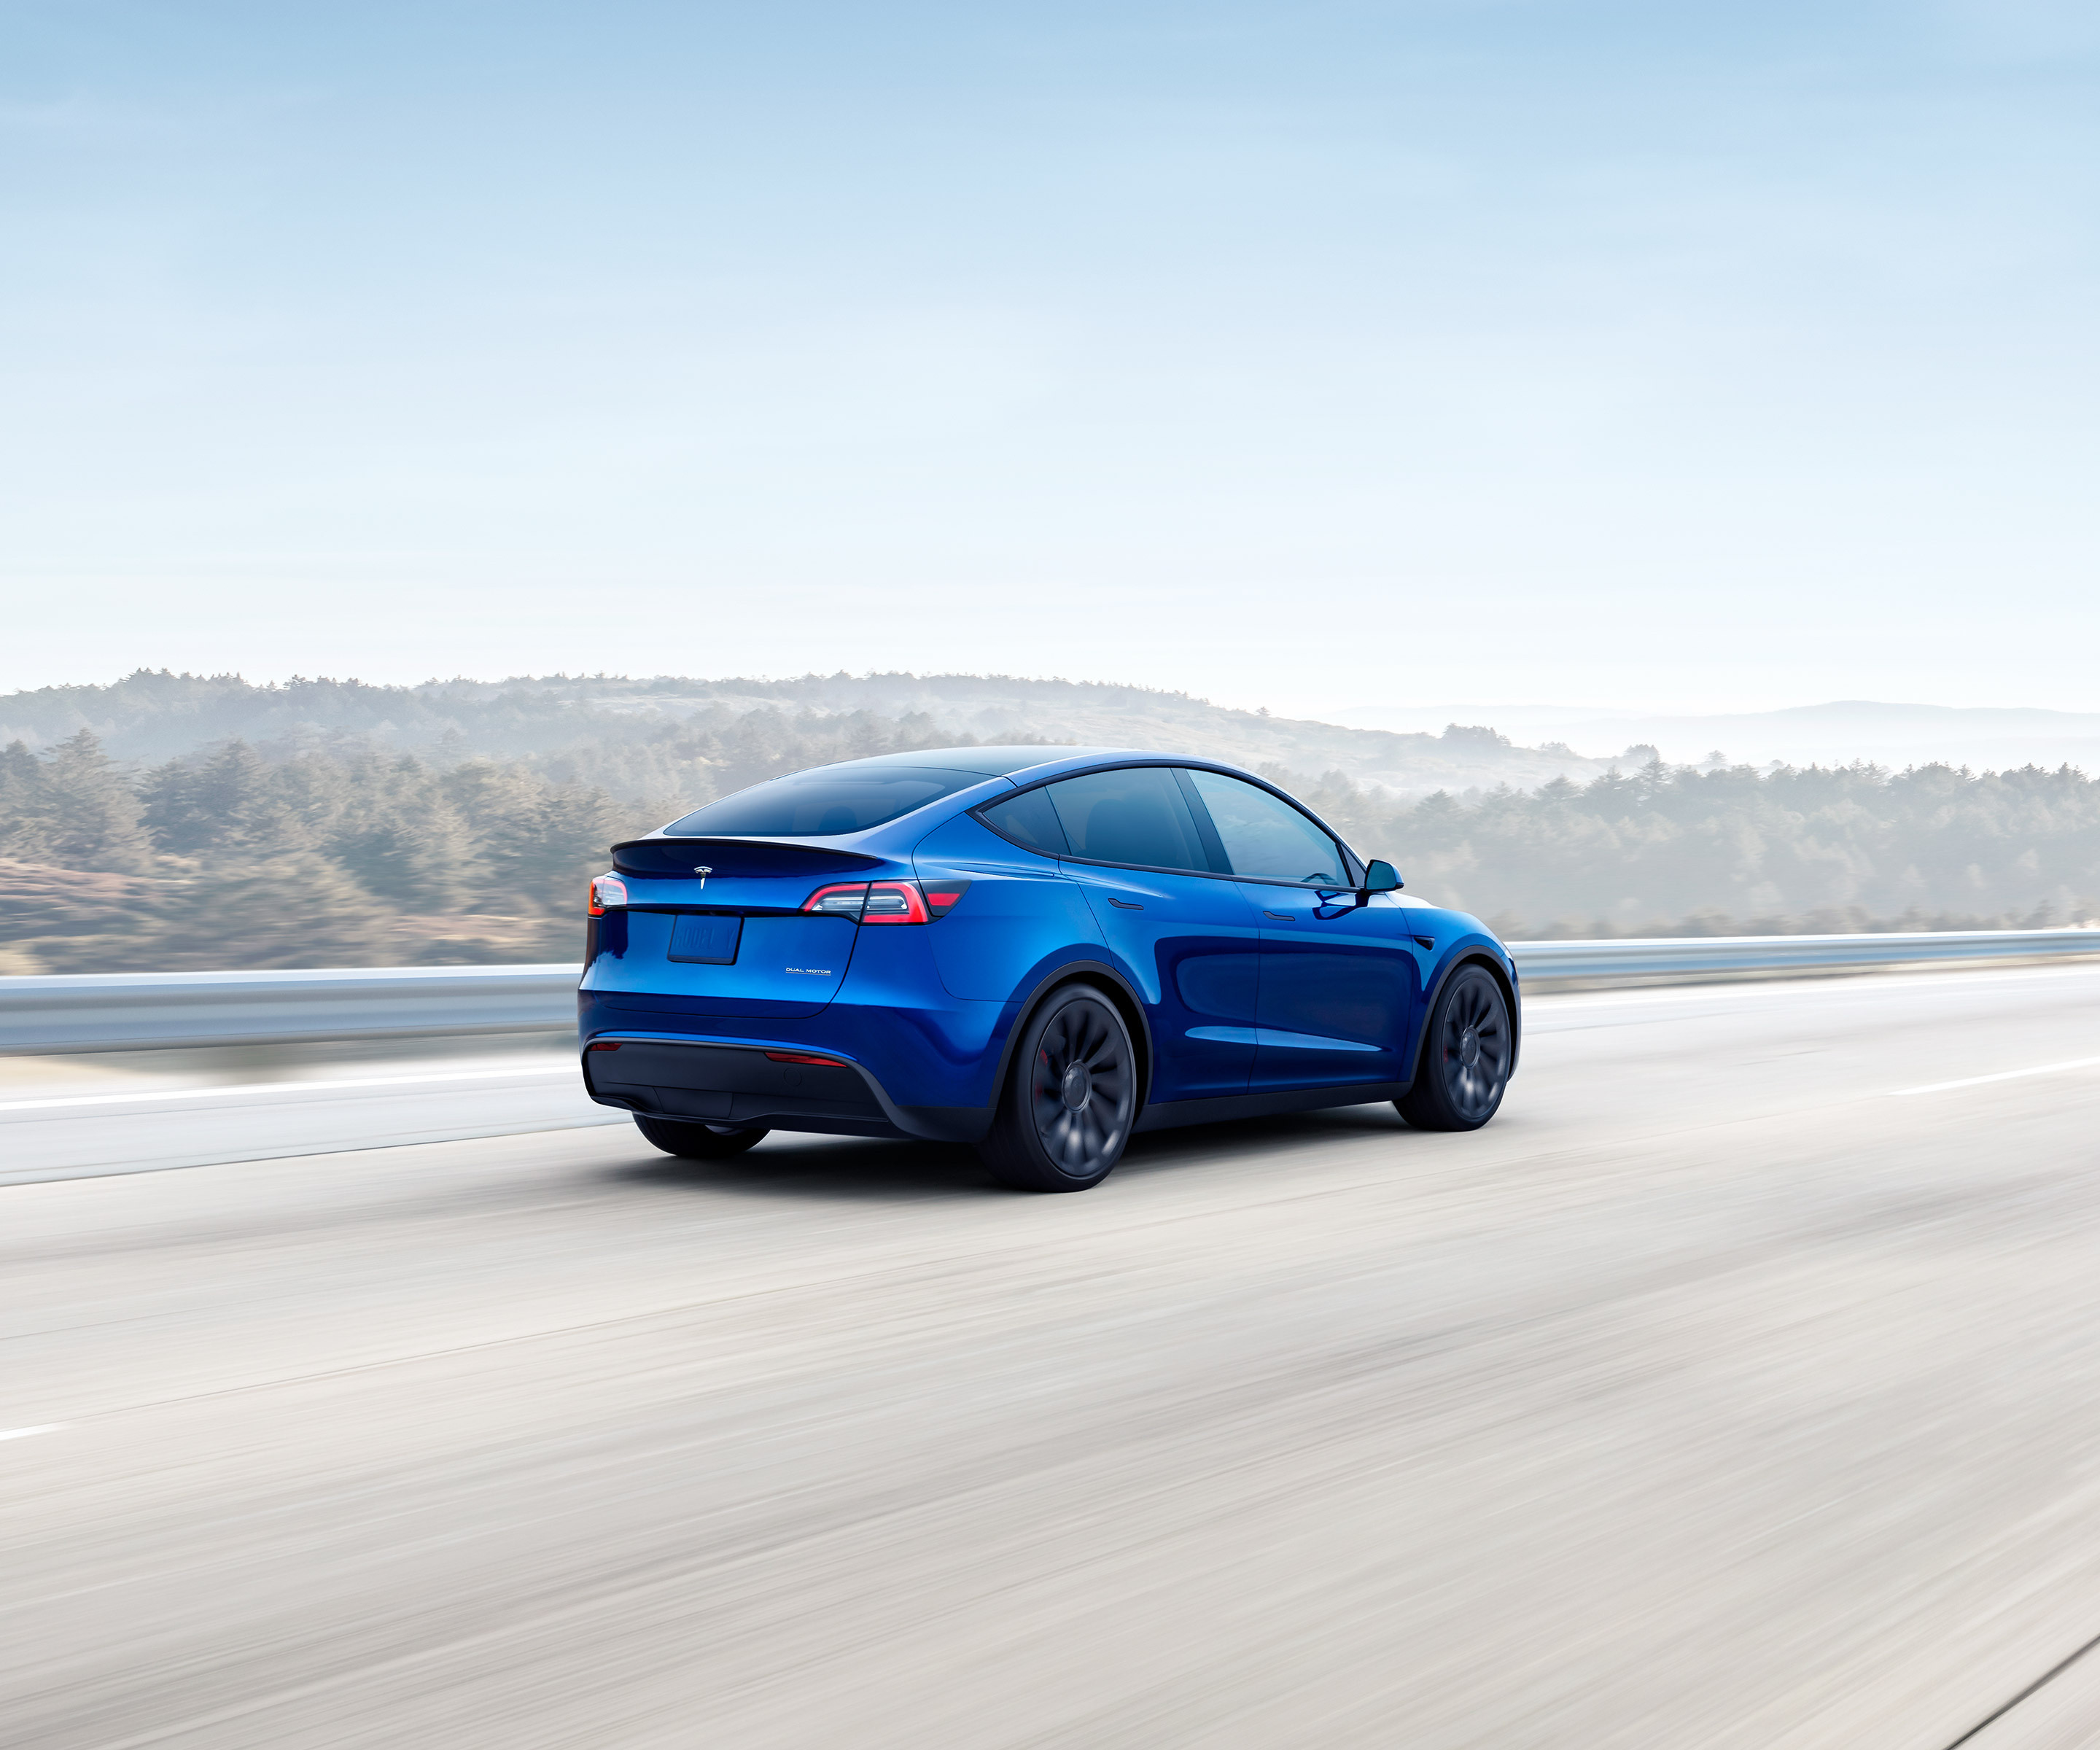 Metallic blue Model Y driving down a hillside highway